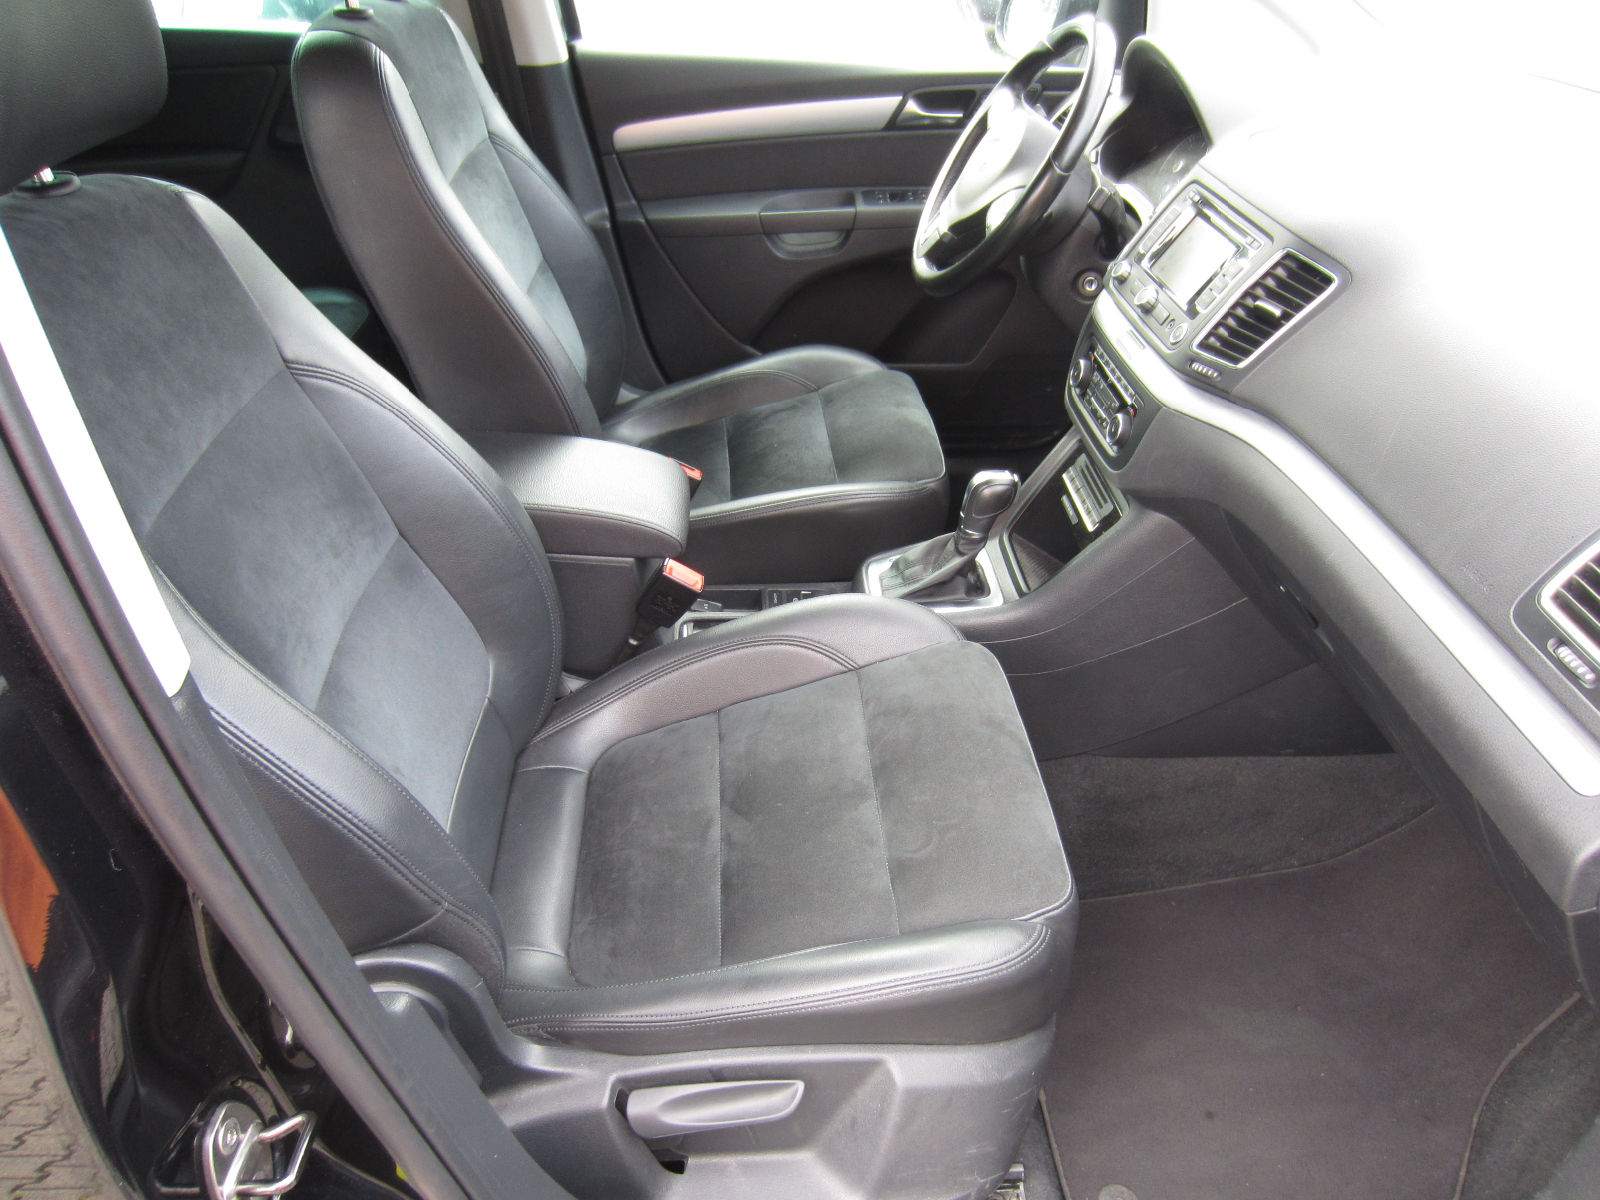 VOLKSWAGEN SHARAN (07/2011) - BLACK METALLIC - lieu: